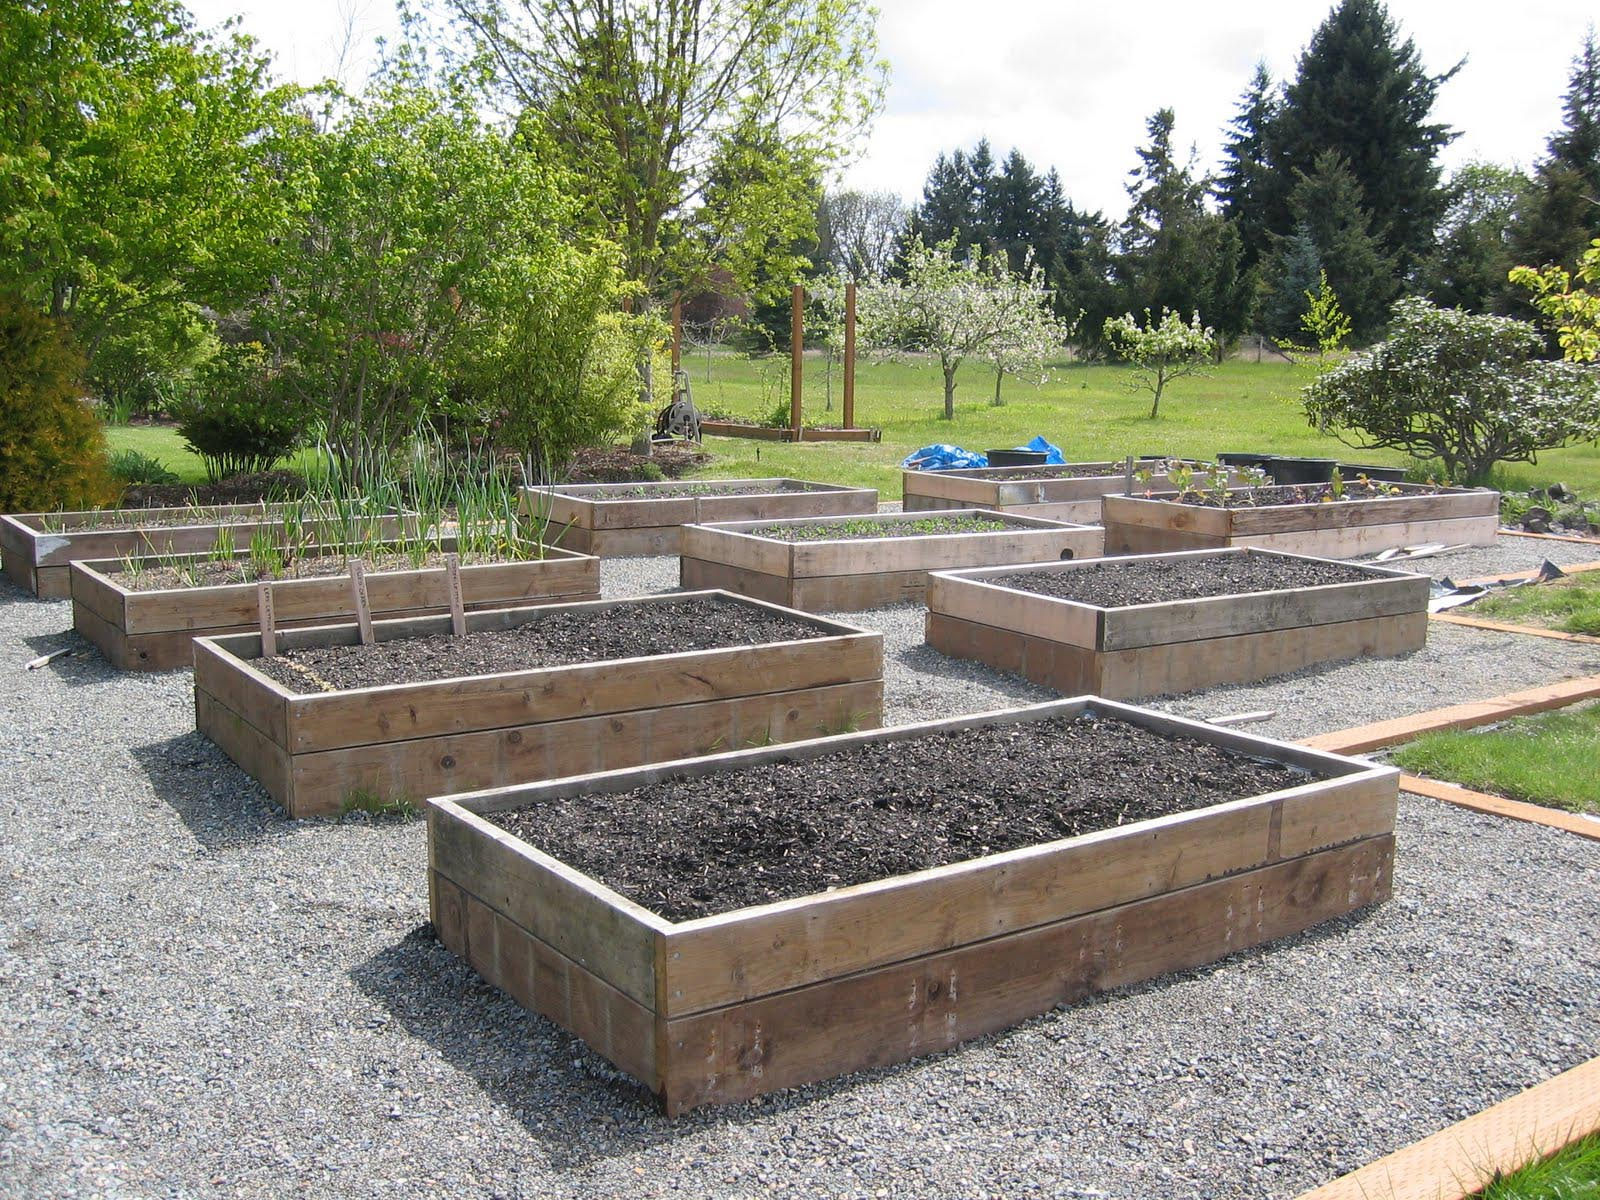 Best Time To Plant Vegetable Gardens What Is The Best Type Of Soil For A Vegetable Garden